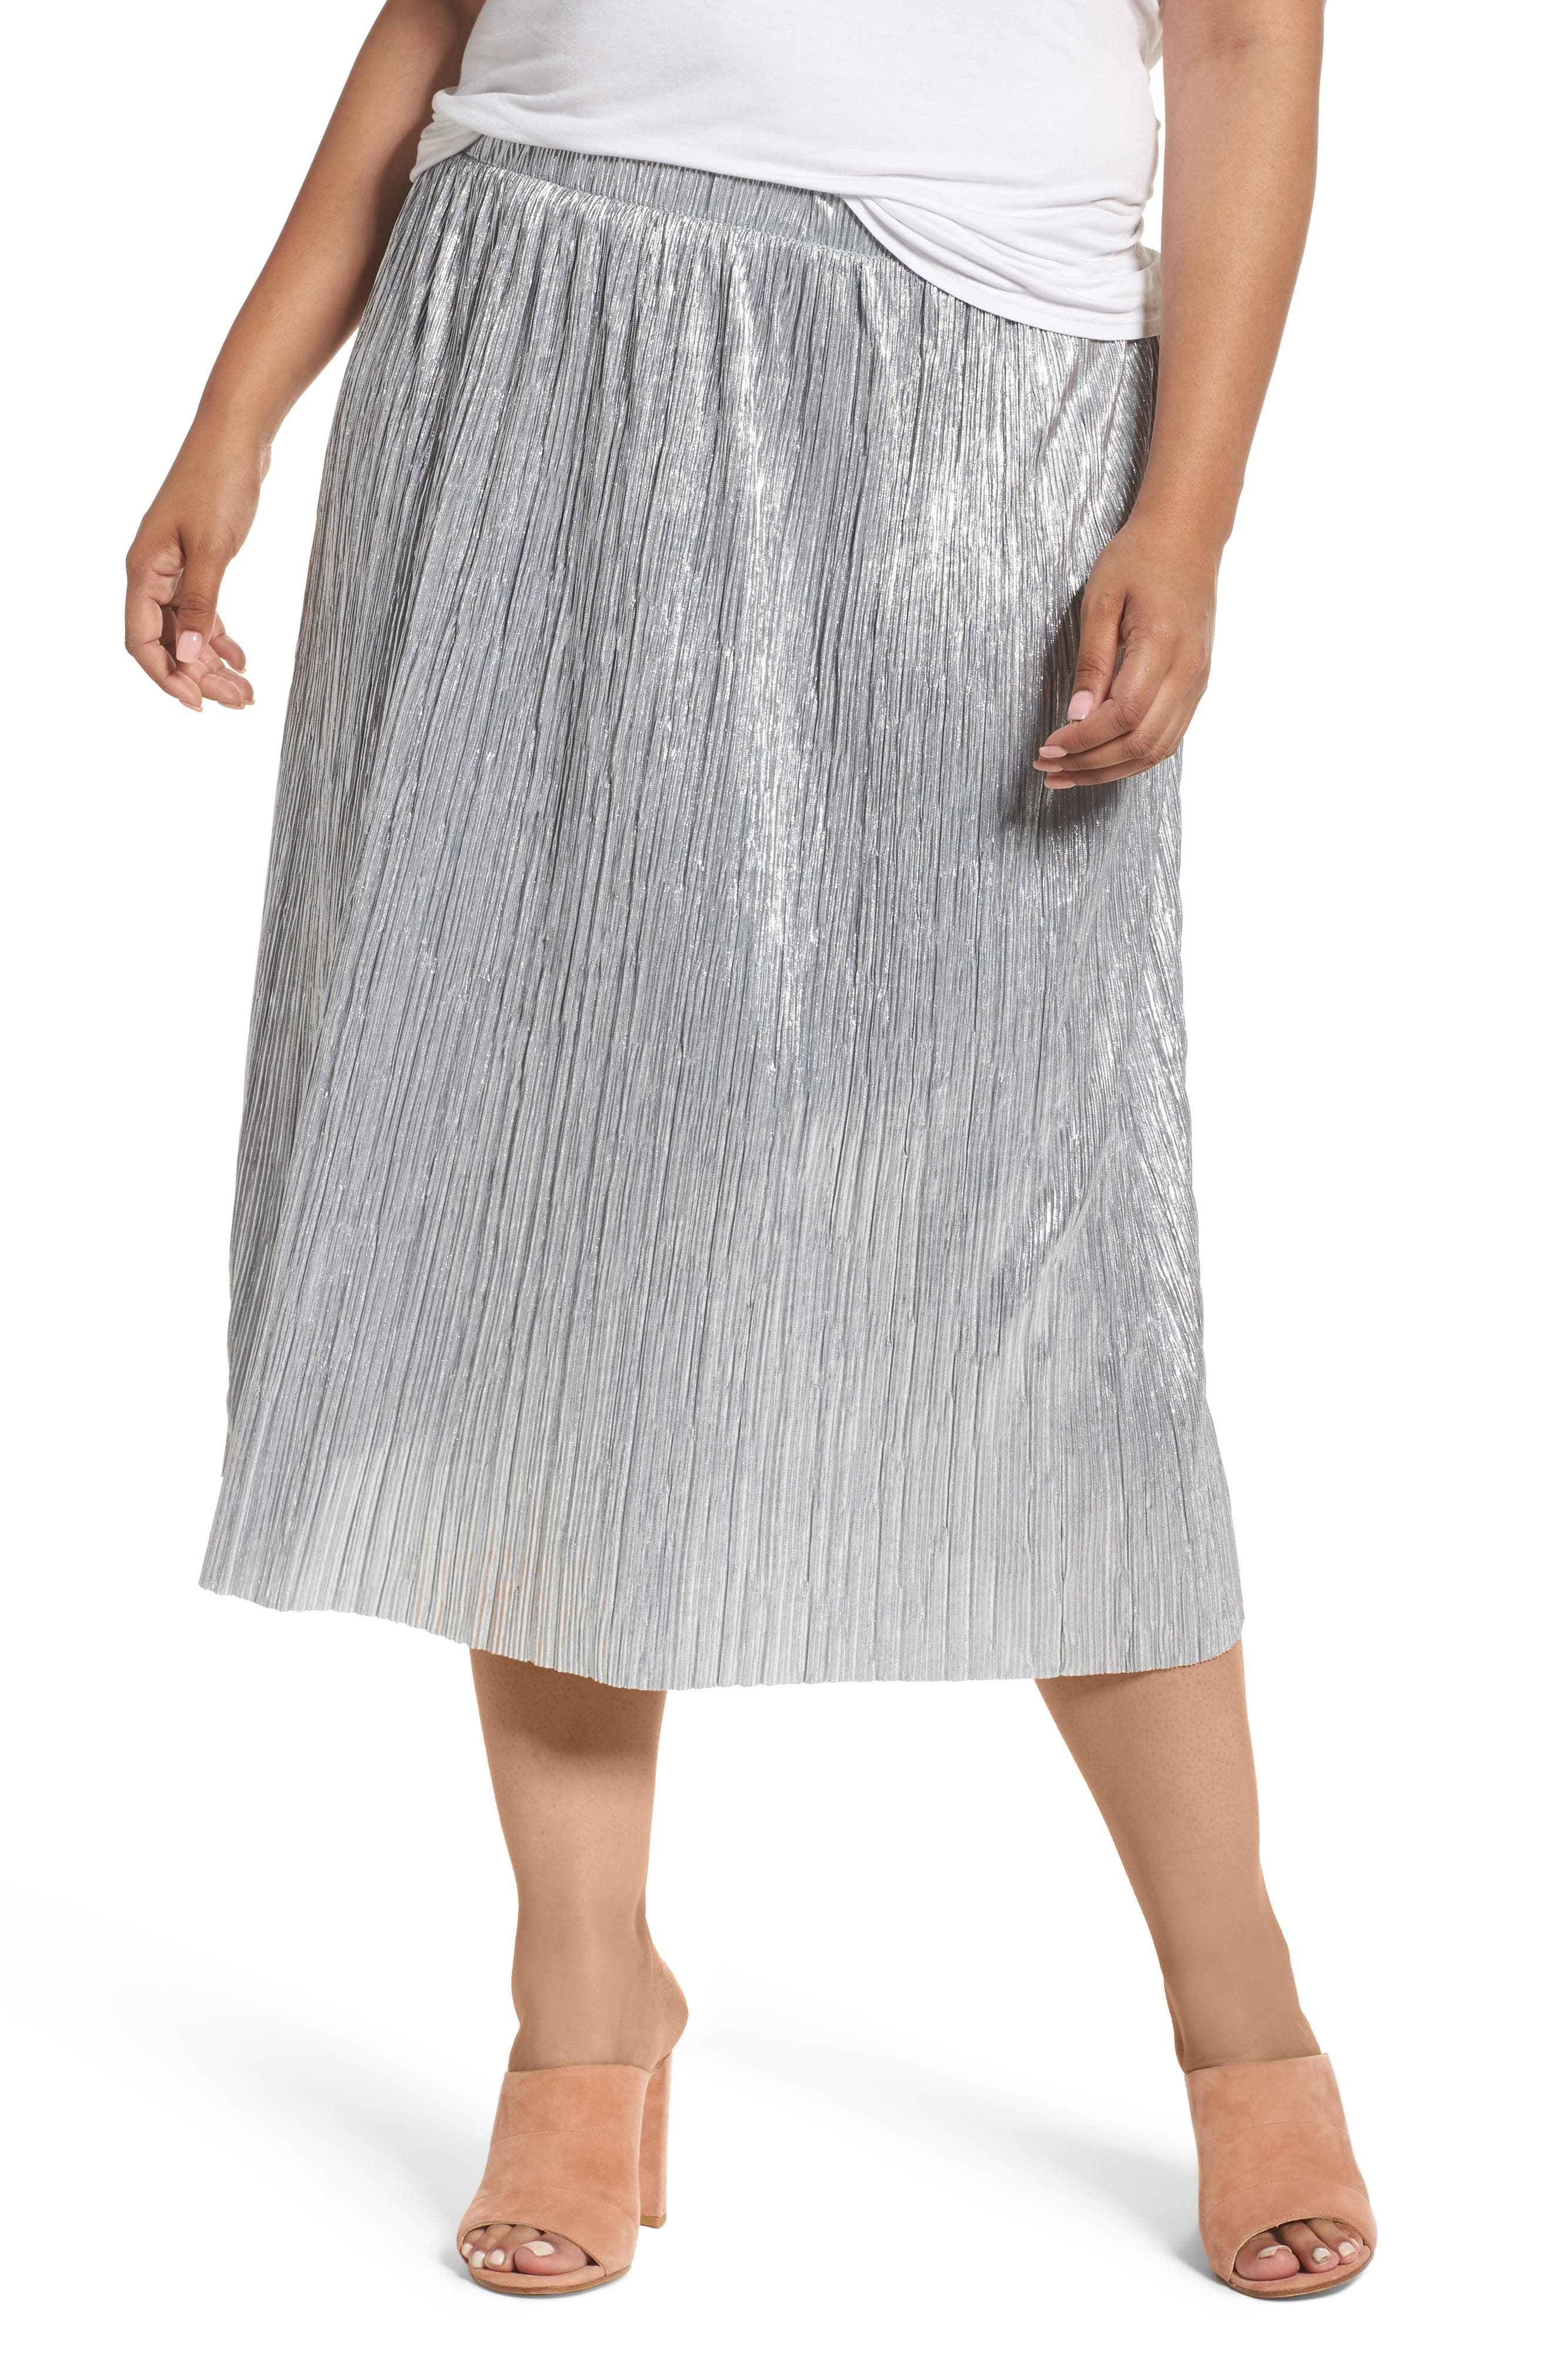 Vince Camuto Crushed Foil Pleated Skirt (Plus Size)